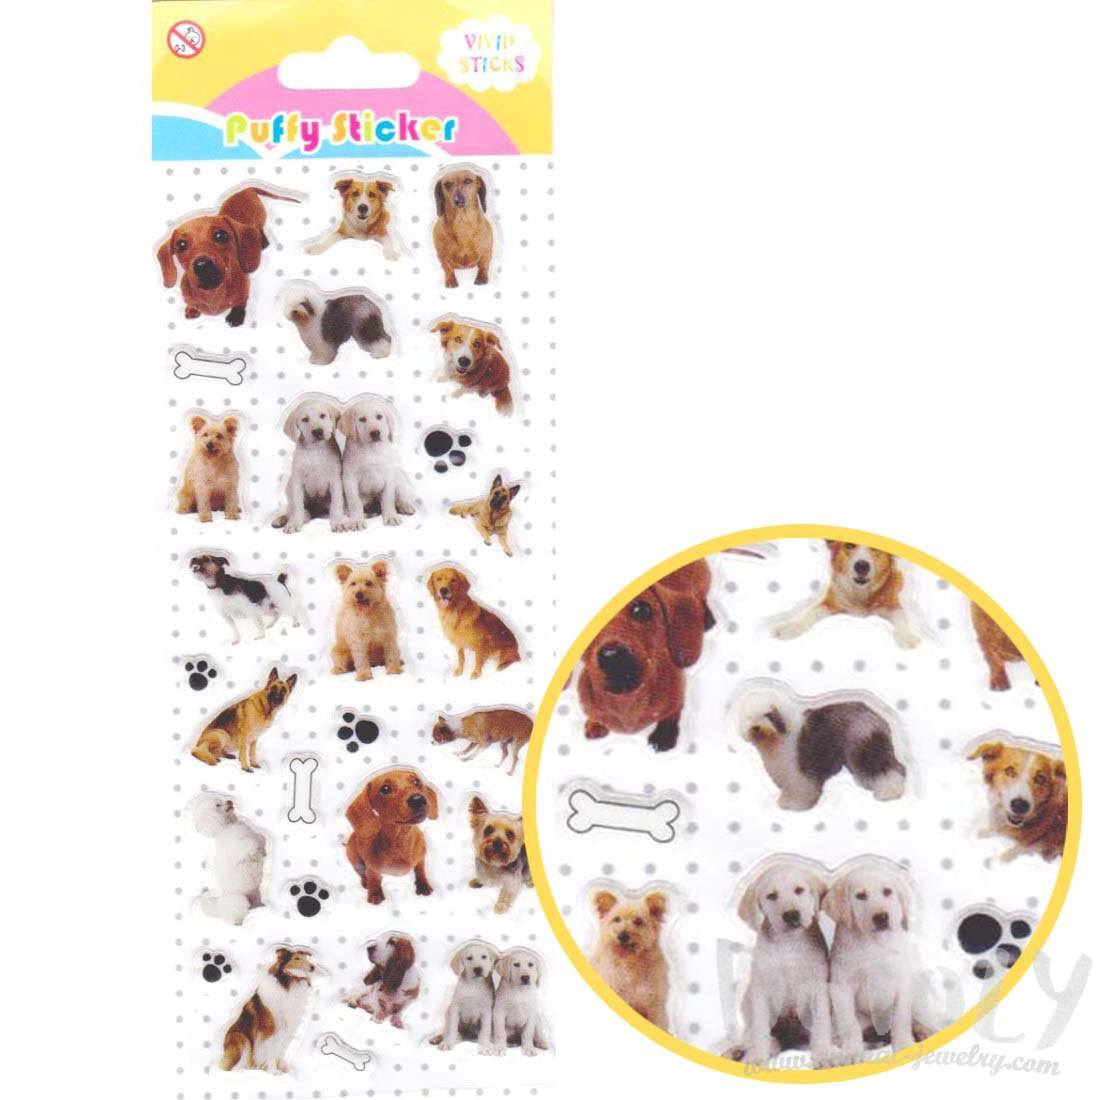 Golden Retriever Dachshund Dog Breed Photo Stickers